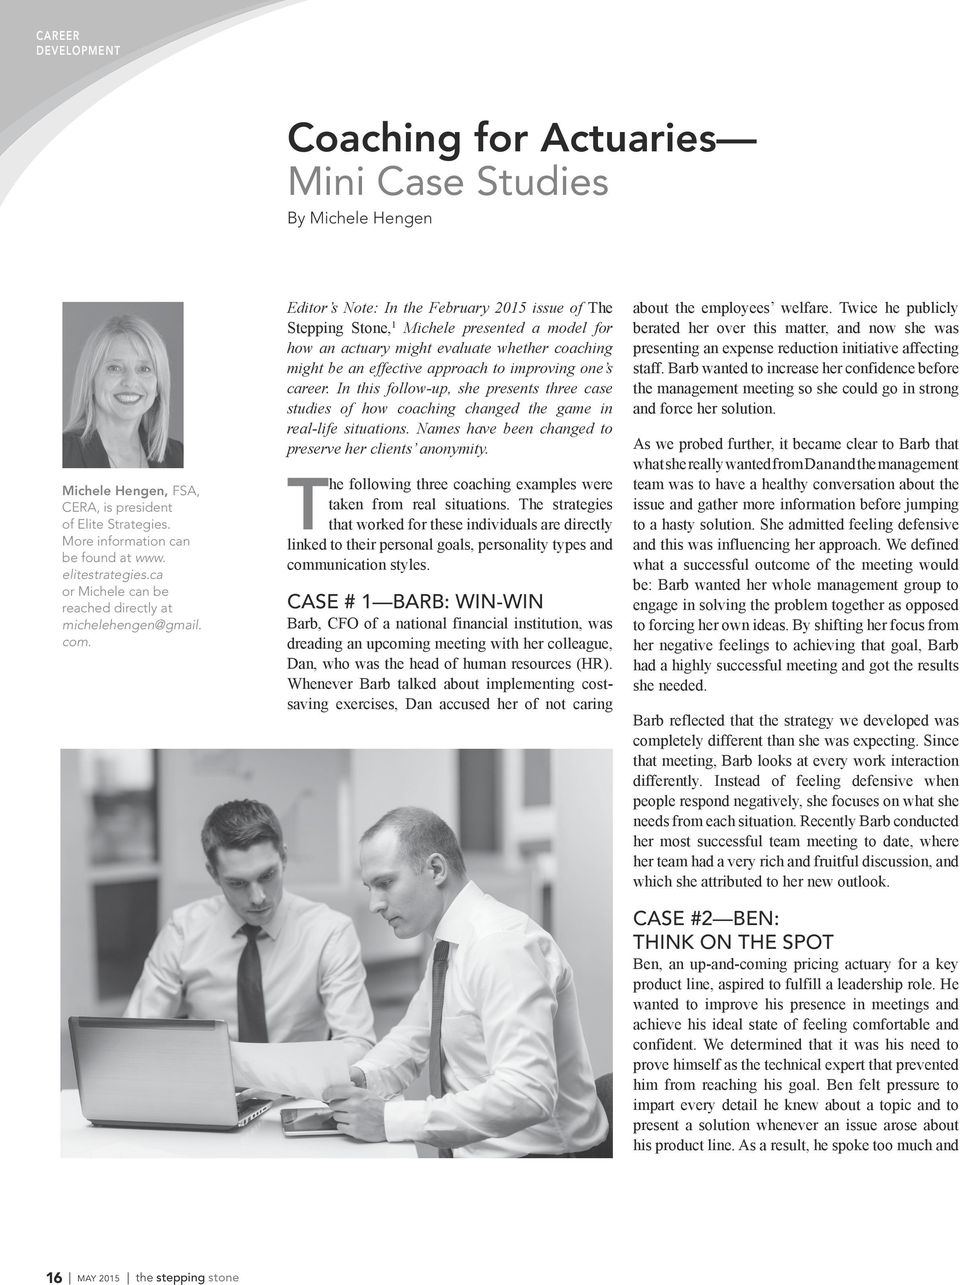 Editor s Note: In the February 2015 issue of The Stepping Stone, 1 Michele presented a model for how an actuary might evaluate whether coaching might be an effective approach to improving one s